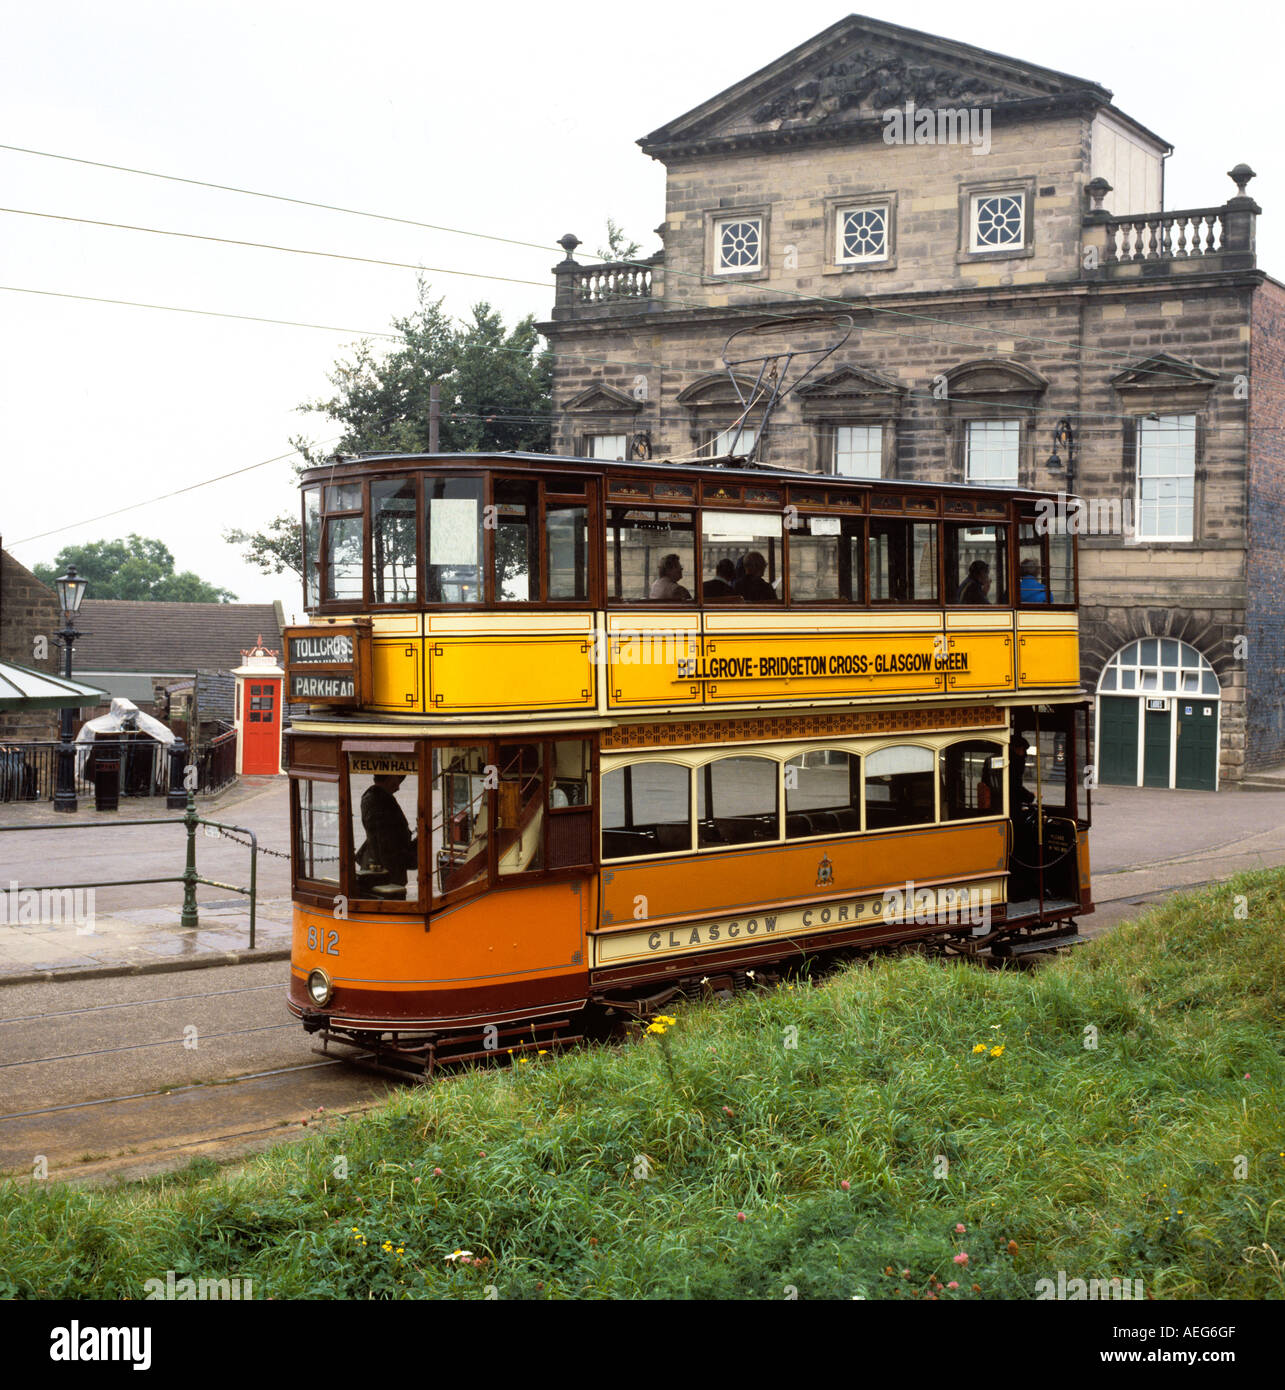 Derbyshire Crich Transport Tramways Museum Glasgow tram and K1 phone box - Stock Image